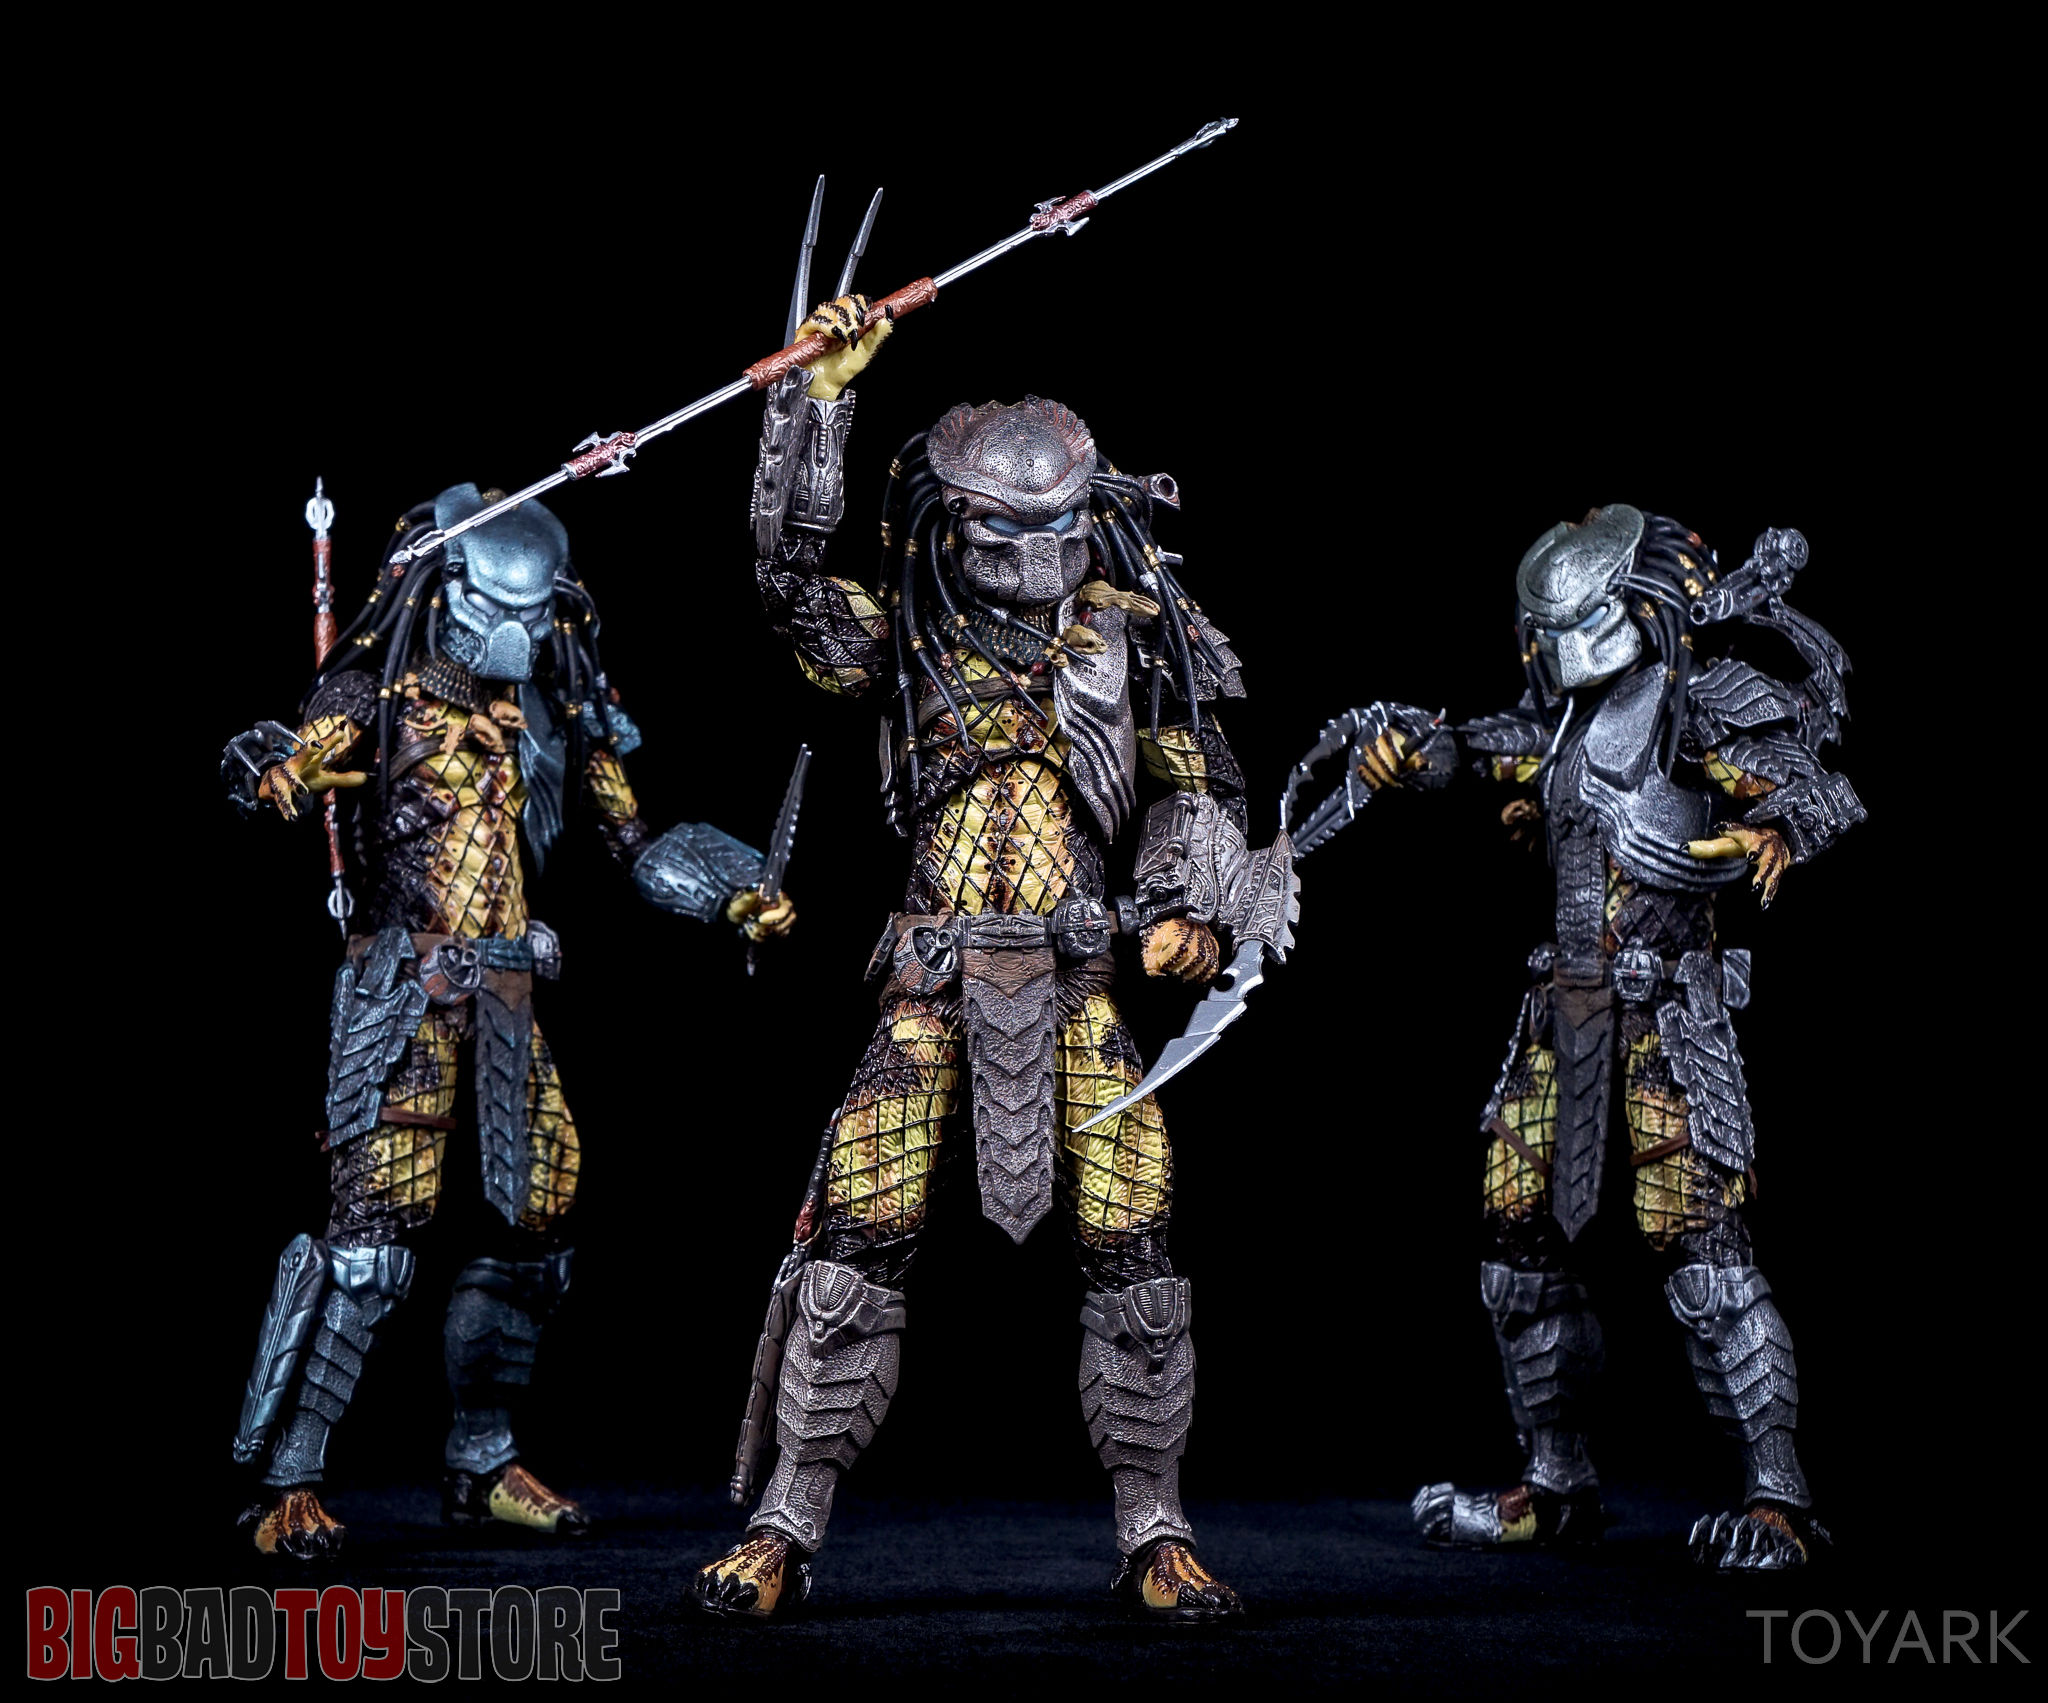 http://news.toyark.com/wp-content/uploads/sites/4/2016/05/NECA-Predator-Series-15-AvP-066.jpg